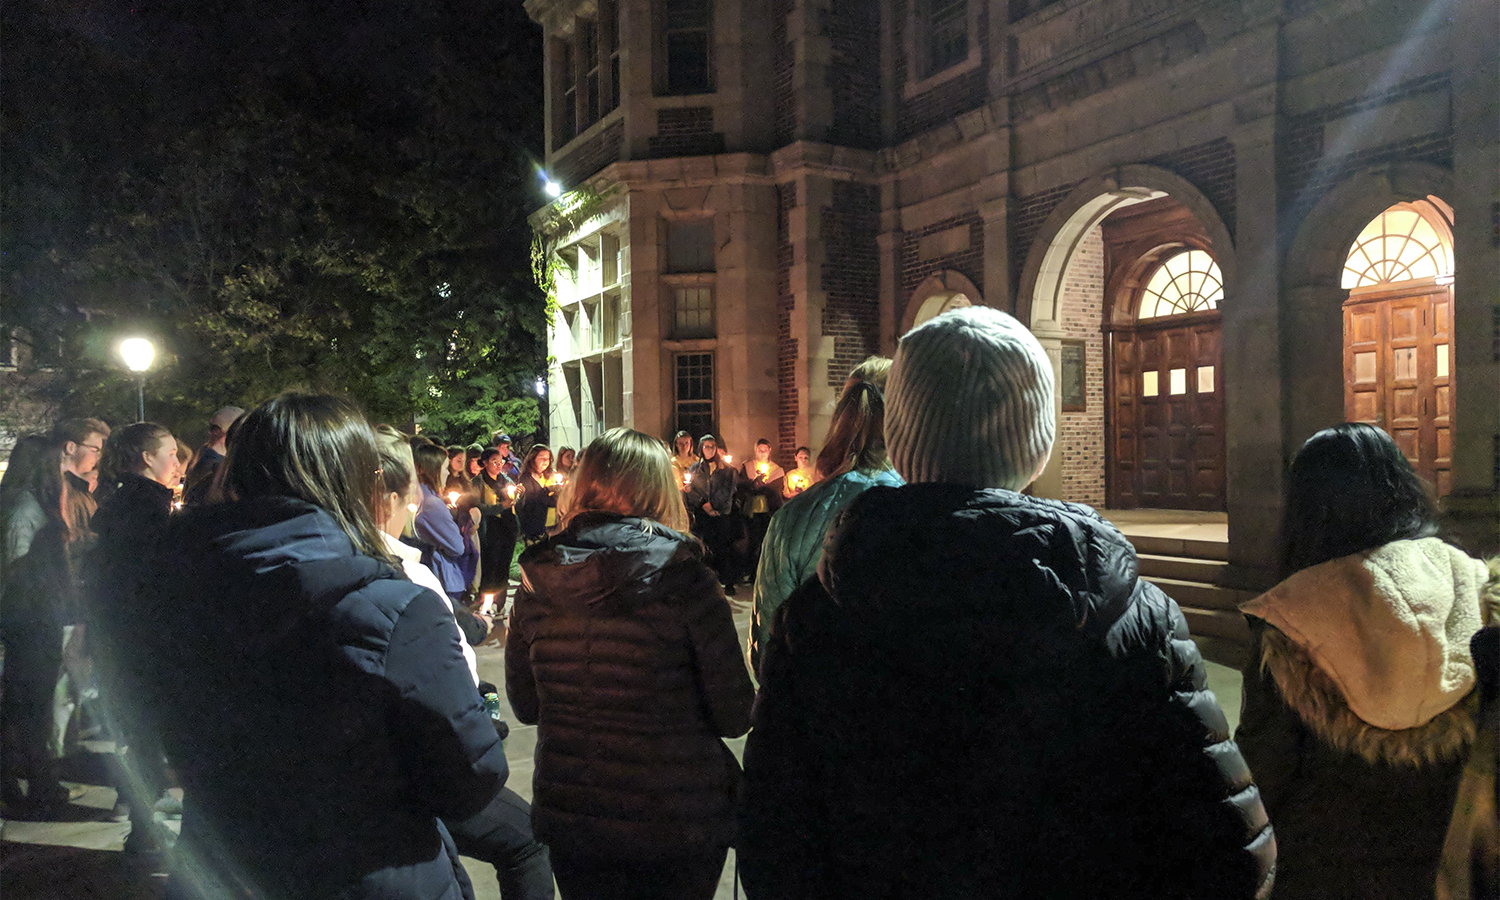 Students, faculty, and staff gather during Take Back the Night on the Steps of Coxe Hall. The event was hosted by the WS Women's Collective.